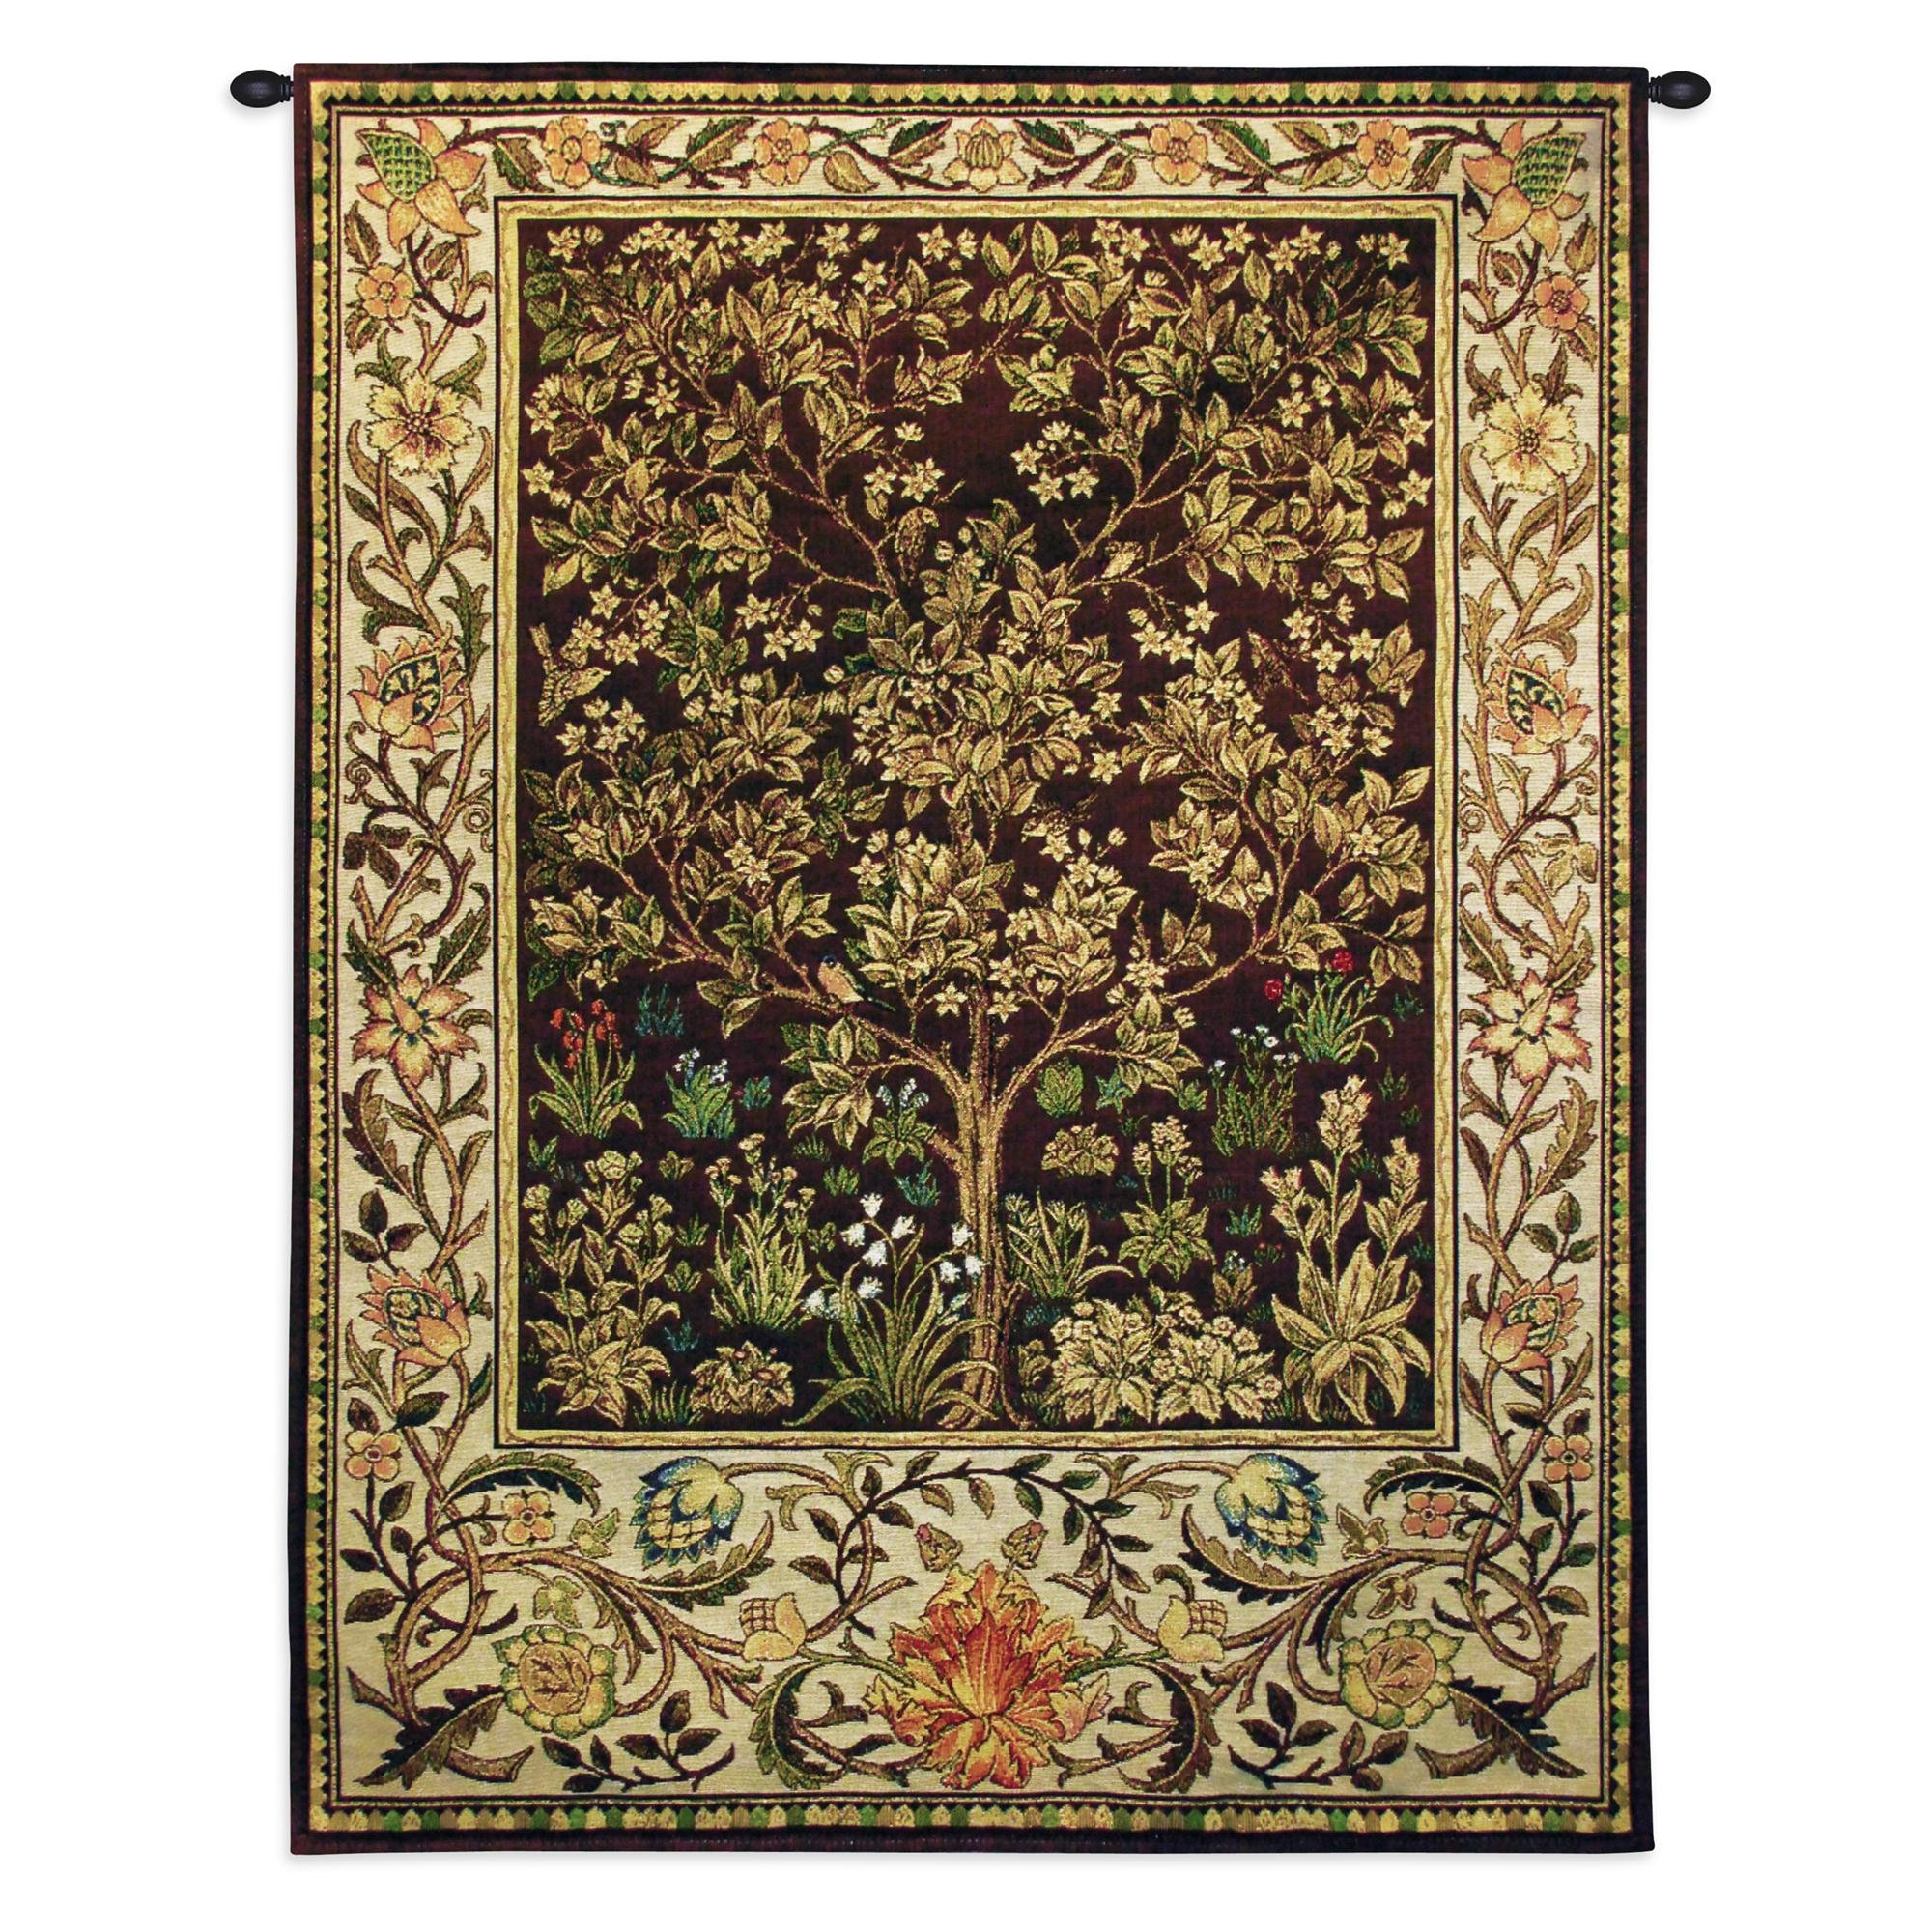 Fine Art Tapestries ''Tree of Life Umber'' Wall Tapestry, Small by Fine Art Tapestries